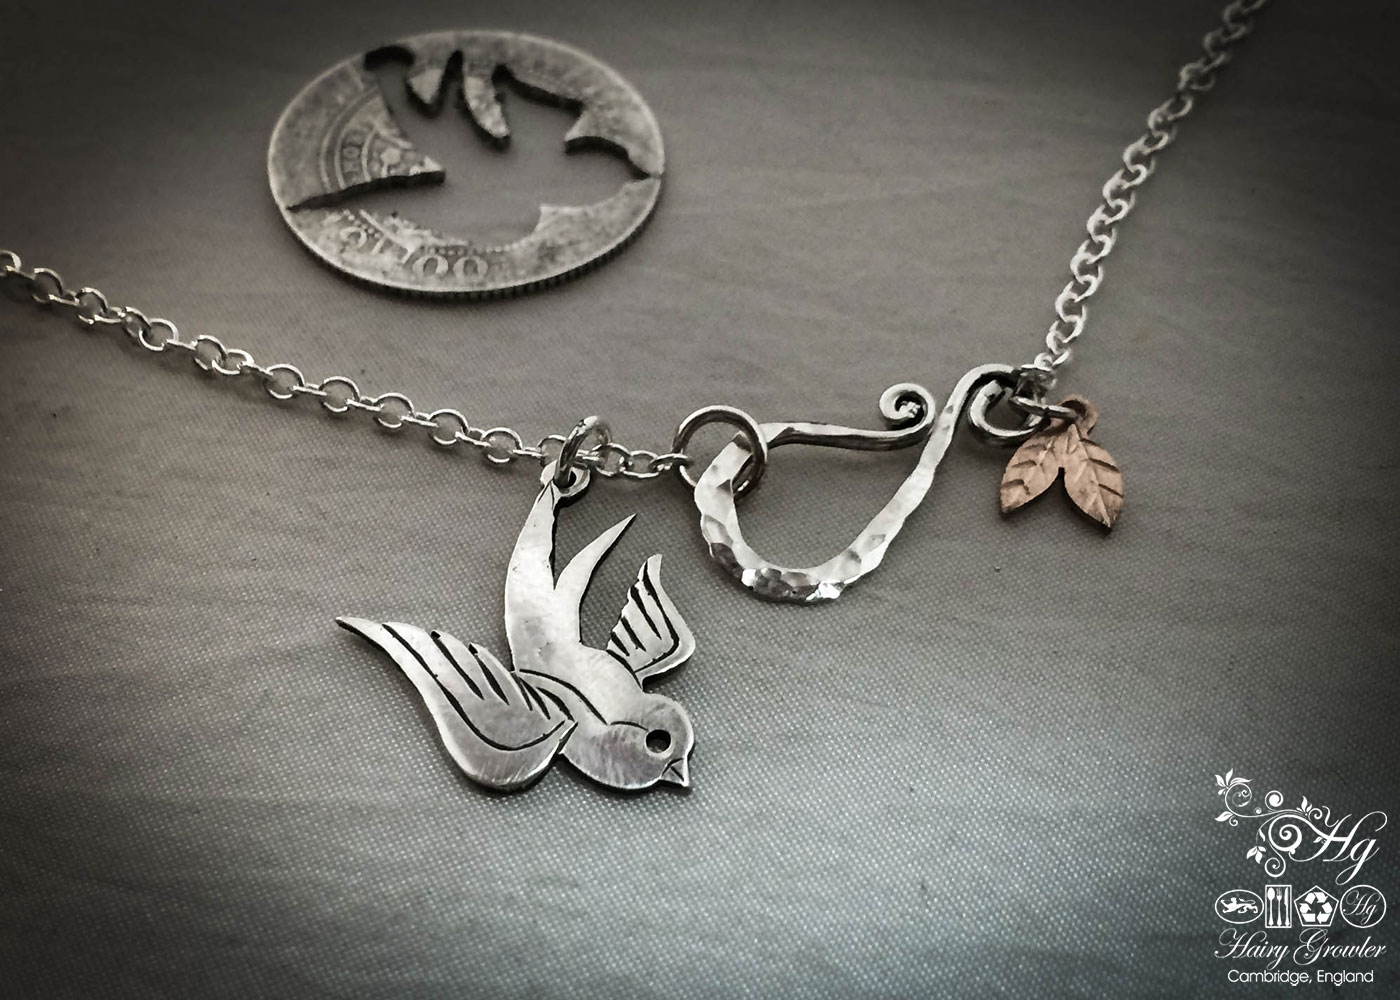 handmade and recycled silver coin swallow necklace pendant